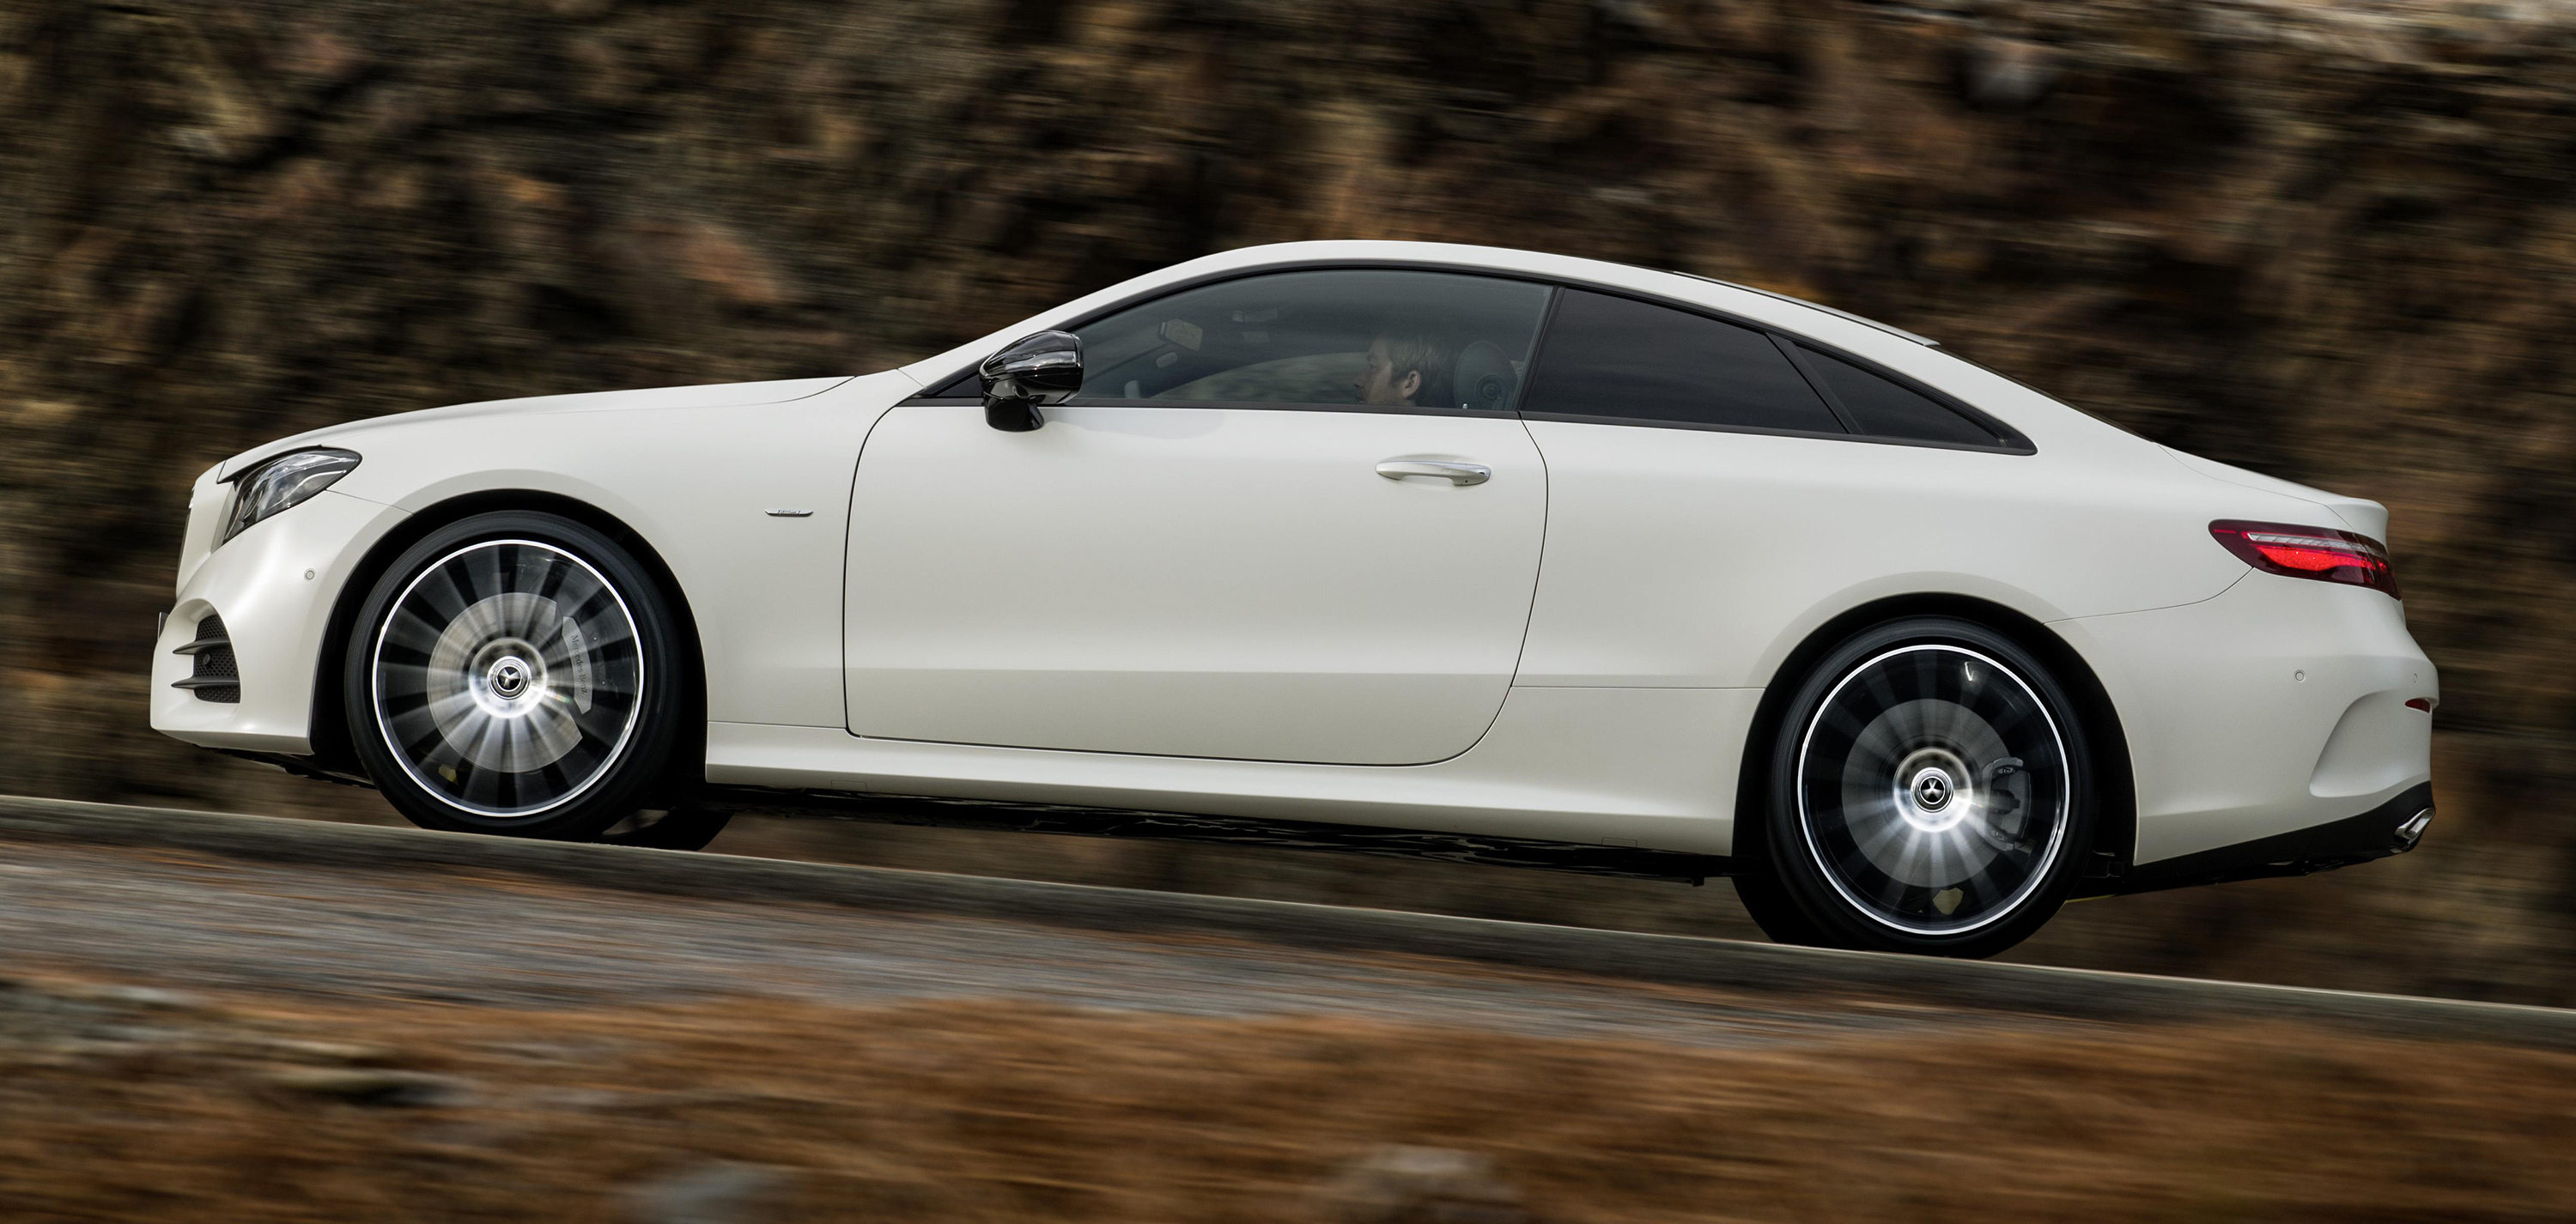 2017 mercedes benz e class coupe revealed ahead of australian debut photos caradvice. Black Bedroom Furniture Sets. Home Design Ideas